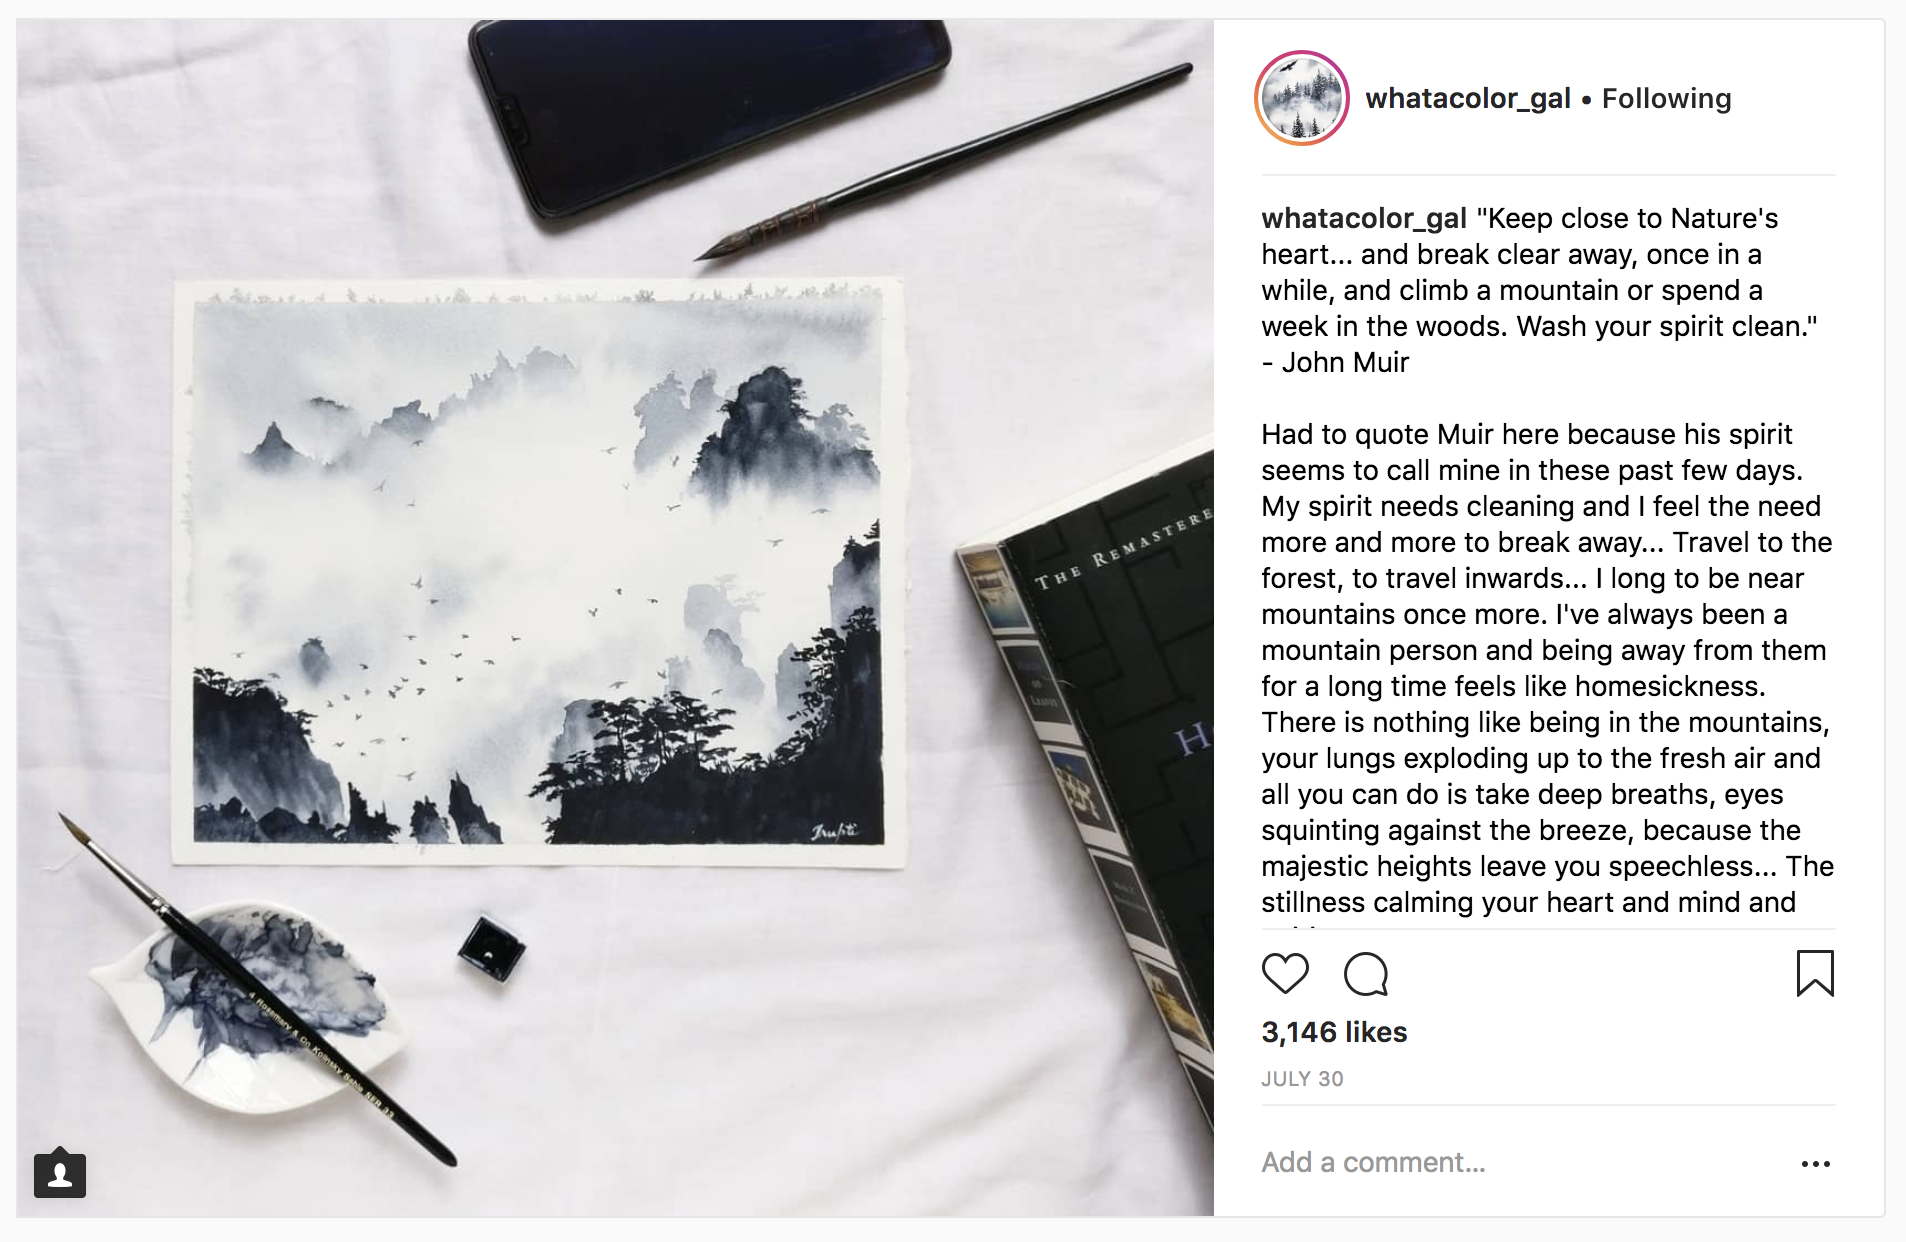 10 Watercolor Artist Inspiration Accounts to Follow: whatacolor_gal